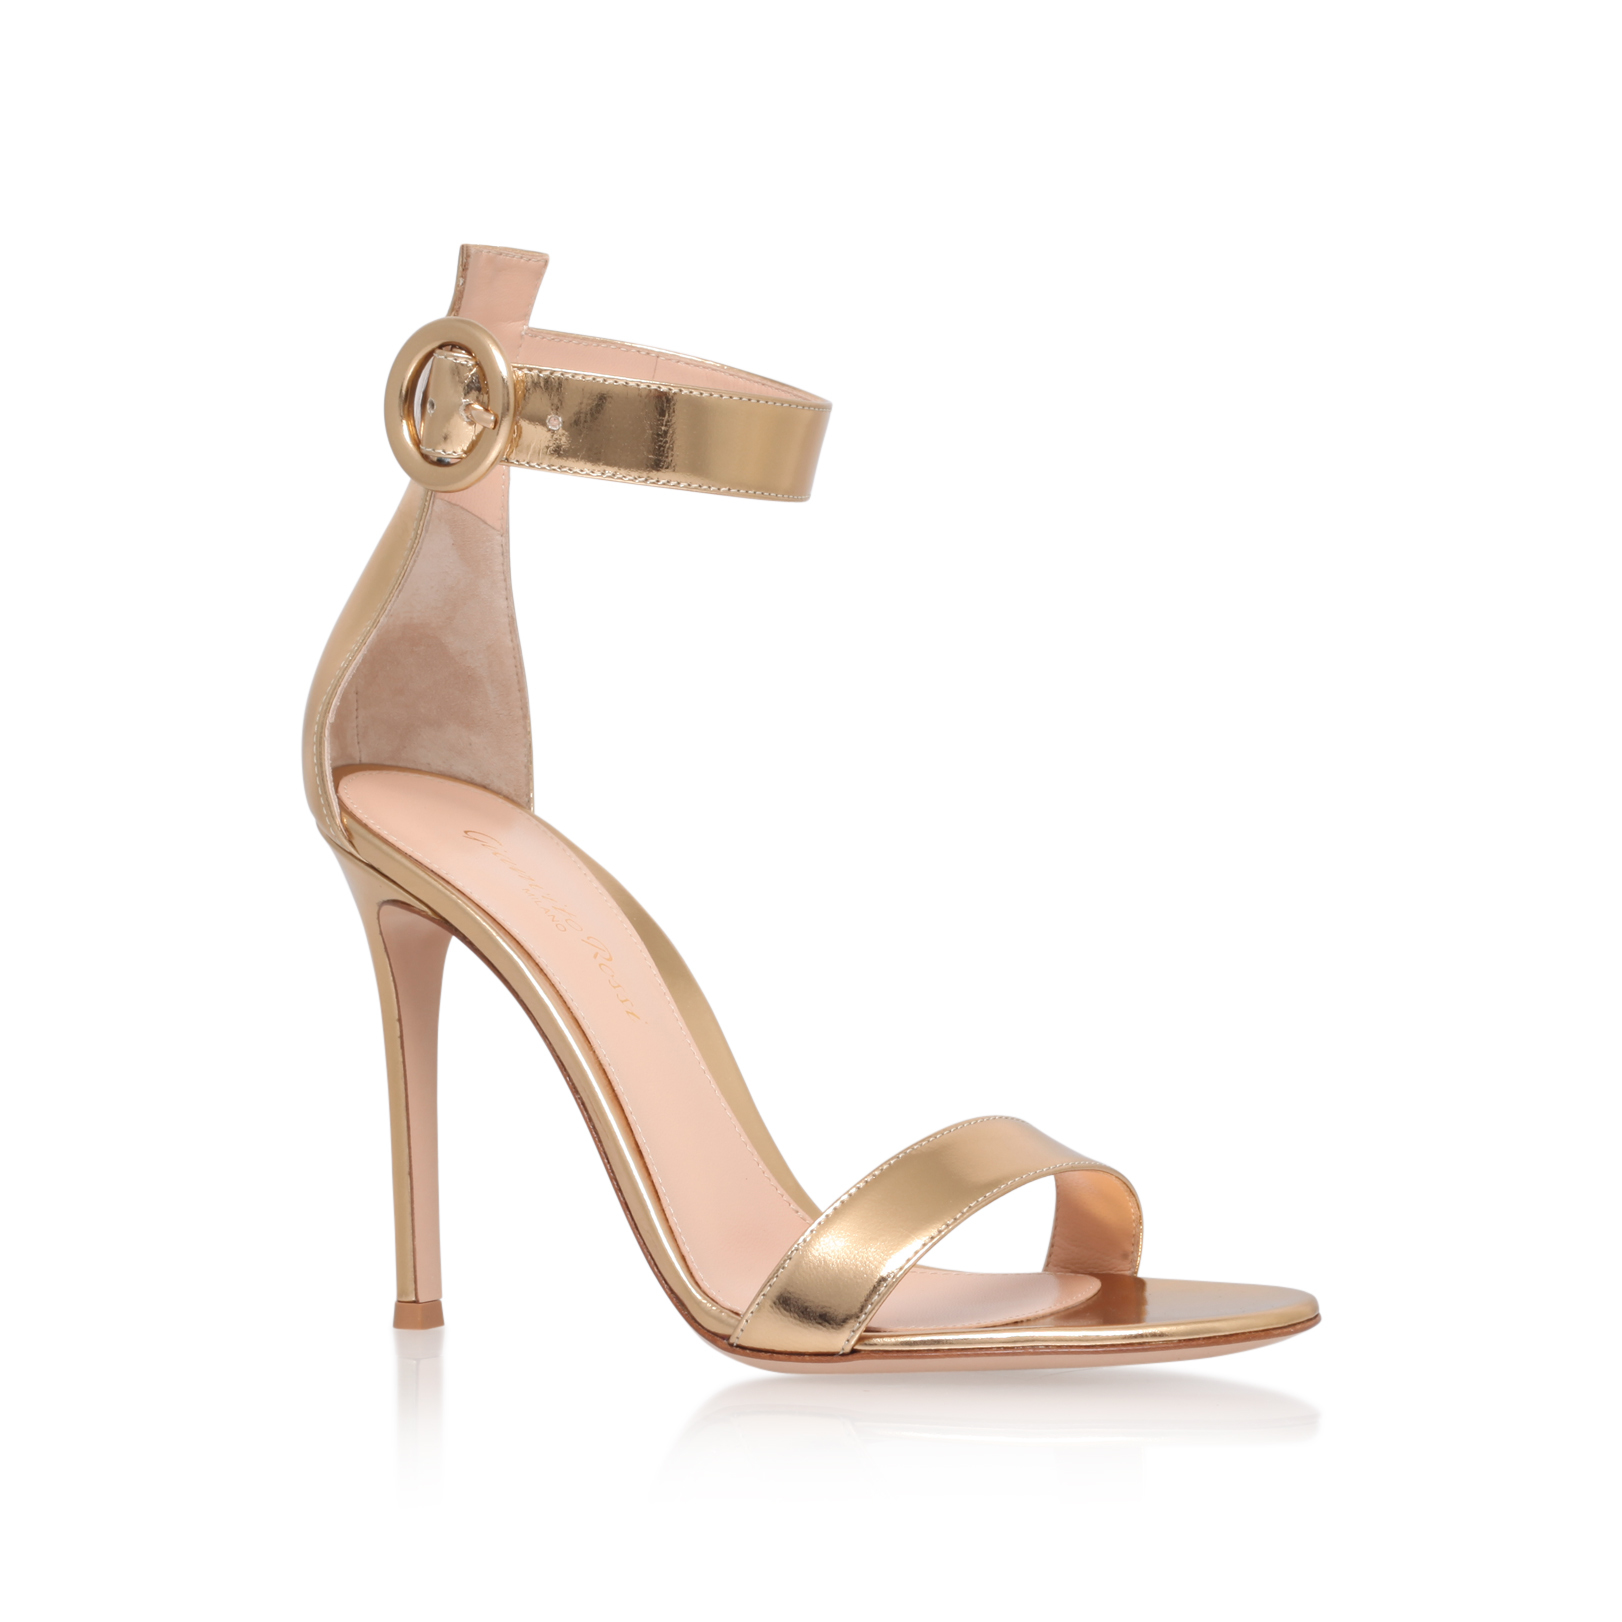 5b4c1751912b PORTOFINO 105 Gianvito Rossi Portofino 105 Gold Leather High Heel Sandals  by GIANVITO ROSSI